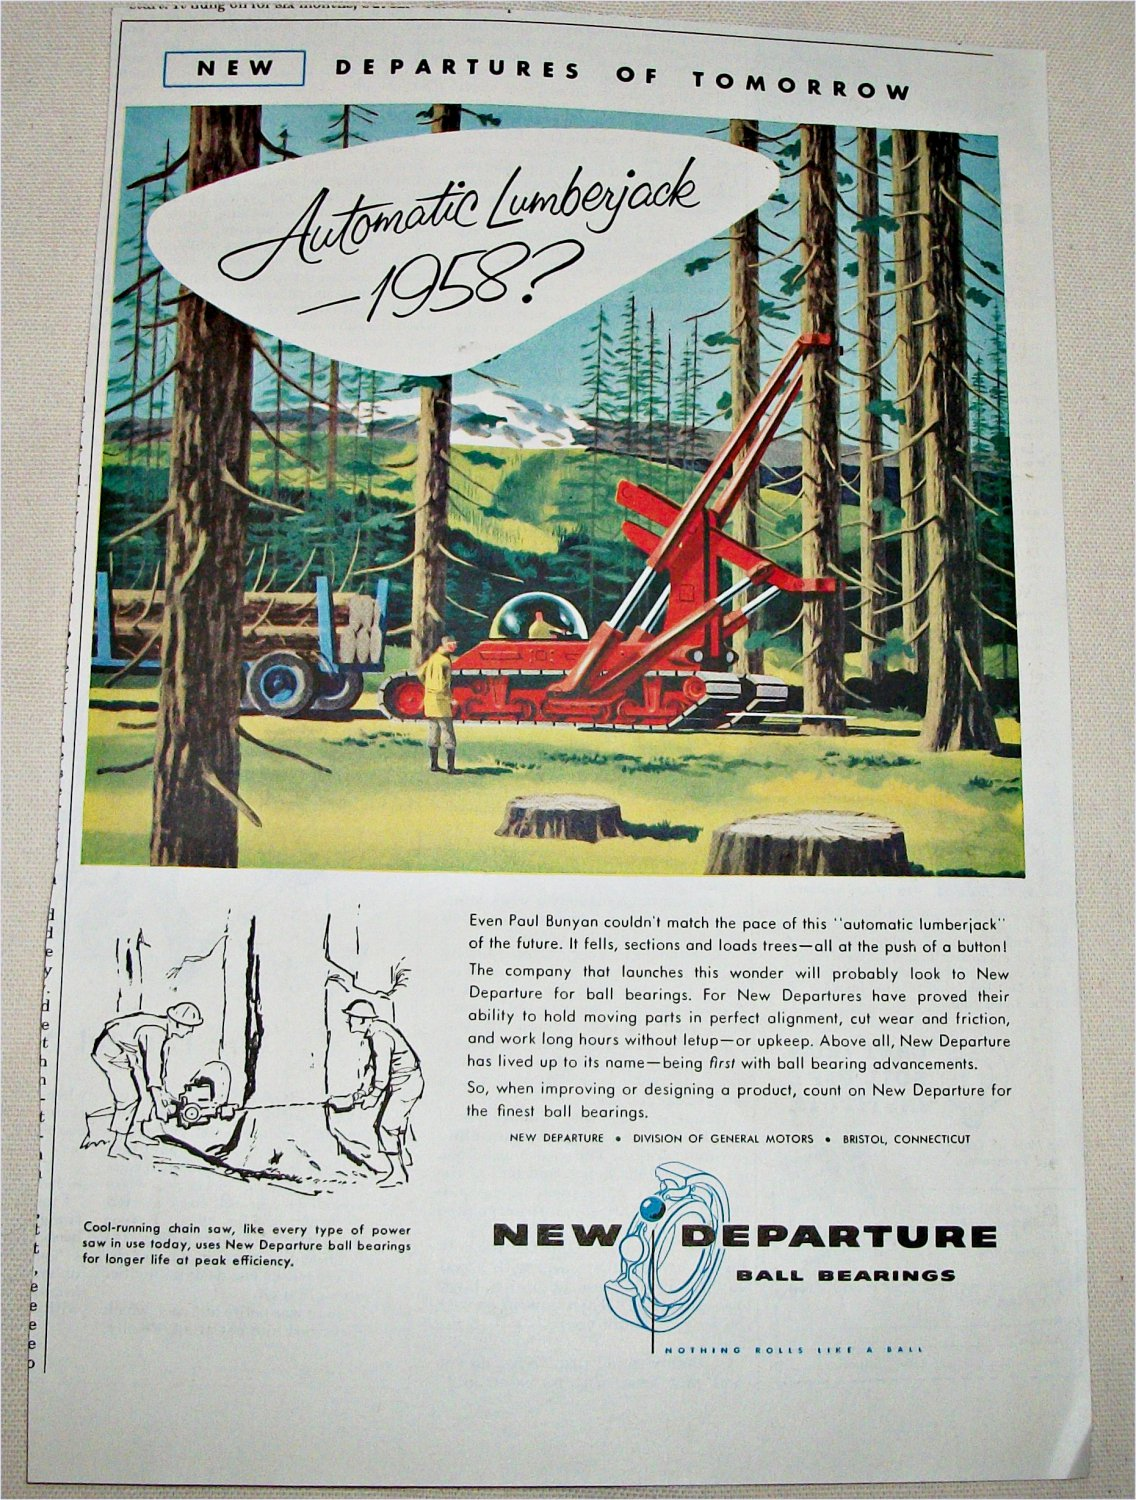 1955 New Depature Ball Bearings ad